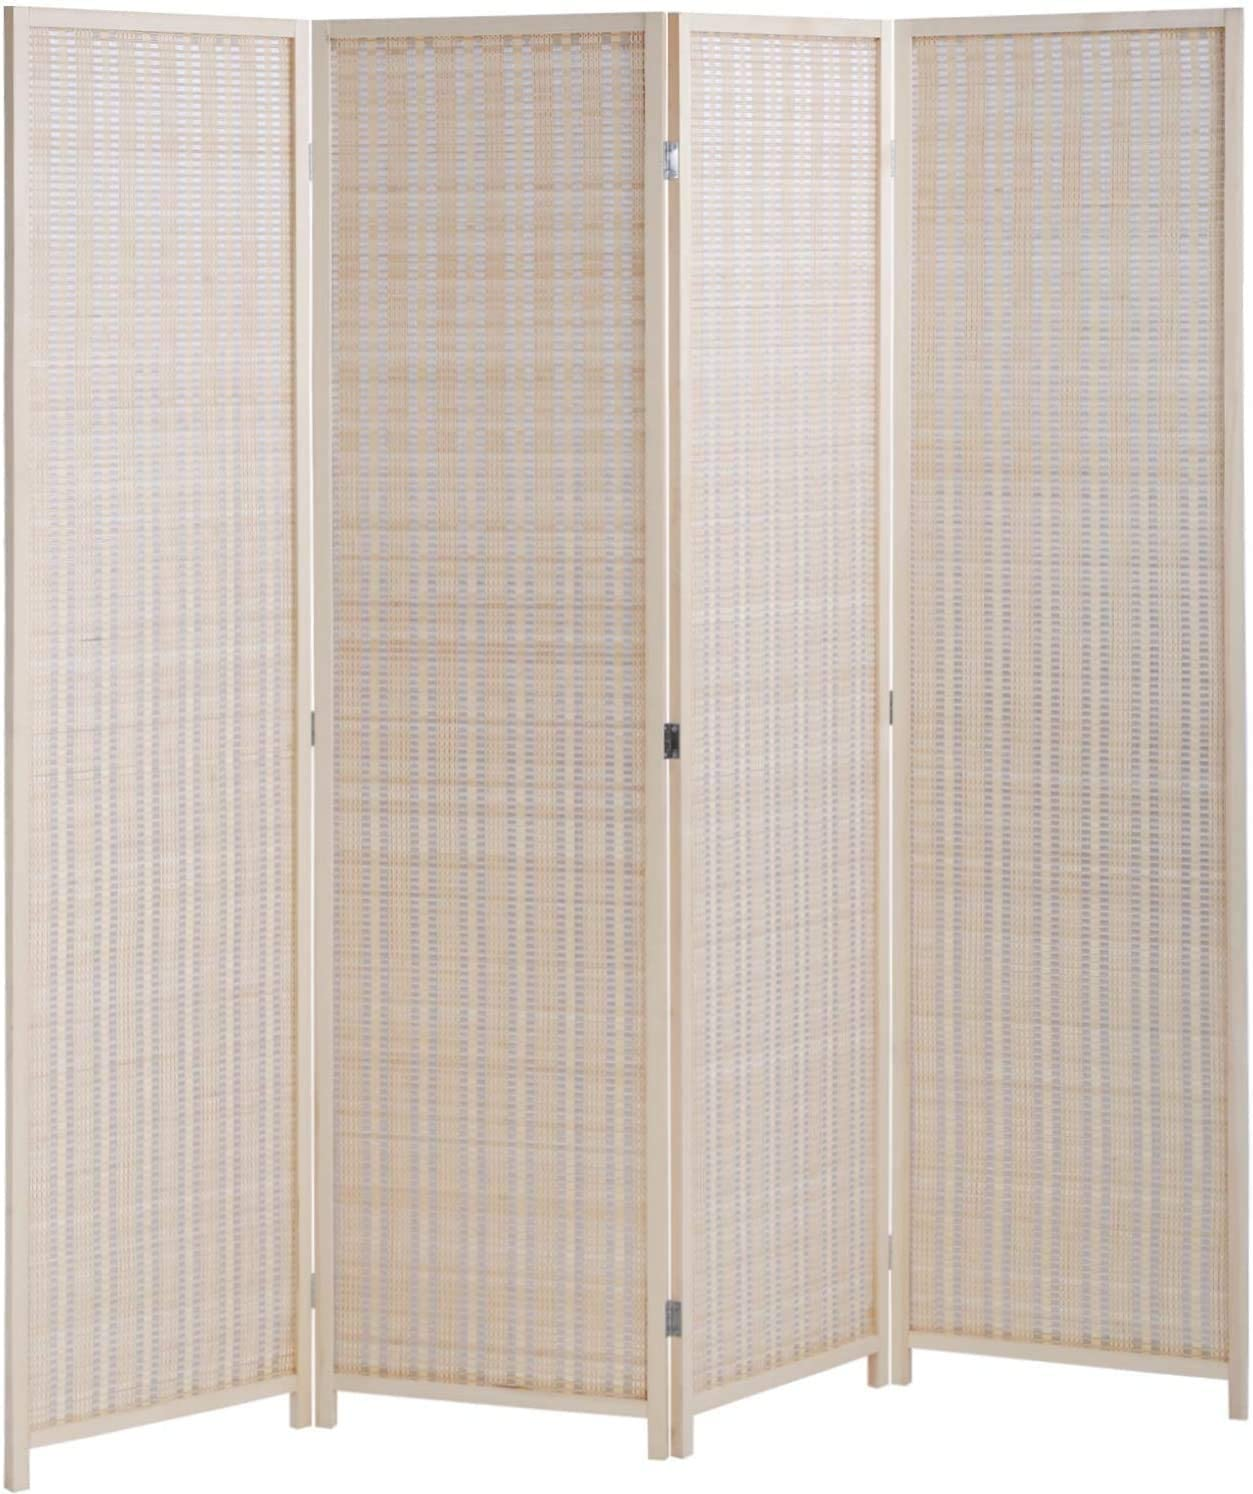 Bamboo Room Divider Folding Privacy Screen for Living Room Bedroom Study, Good Opacity Partition, Divider Has Anti-Slip Mats, Light and Easy to Move, Best Home Foldable Privacy Screen – 72 H 17.7 W